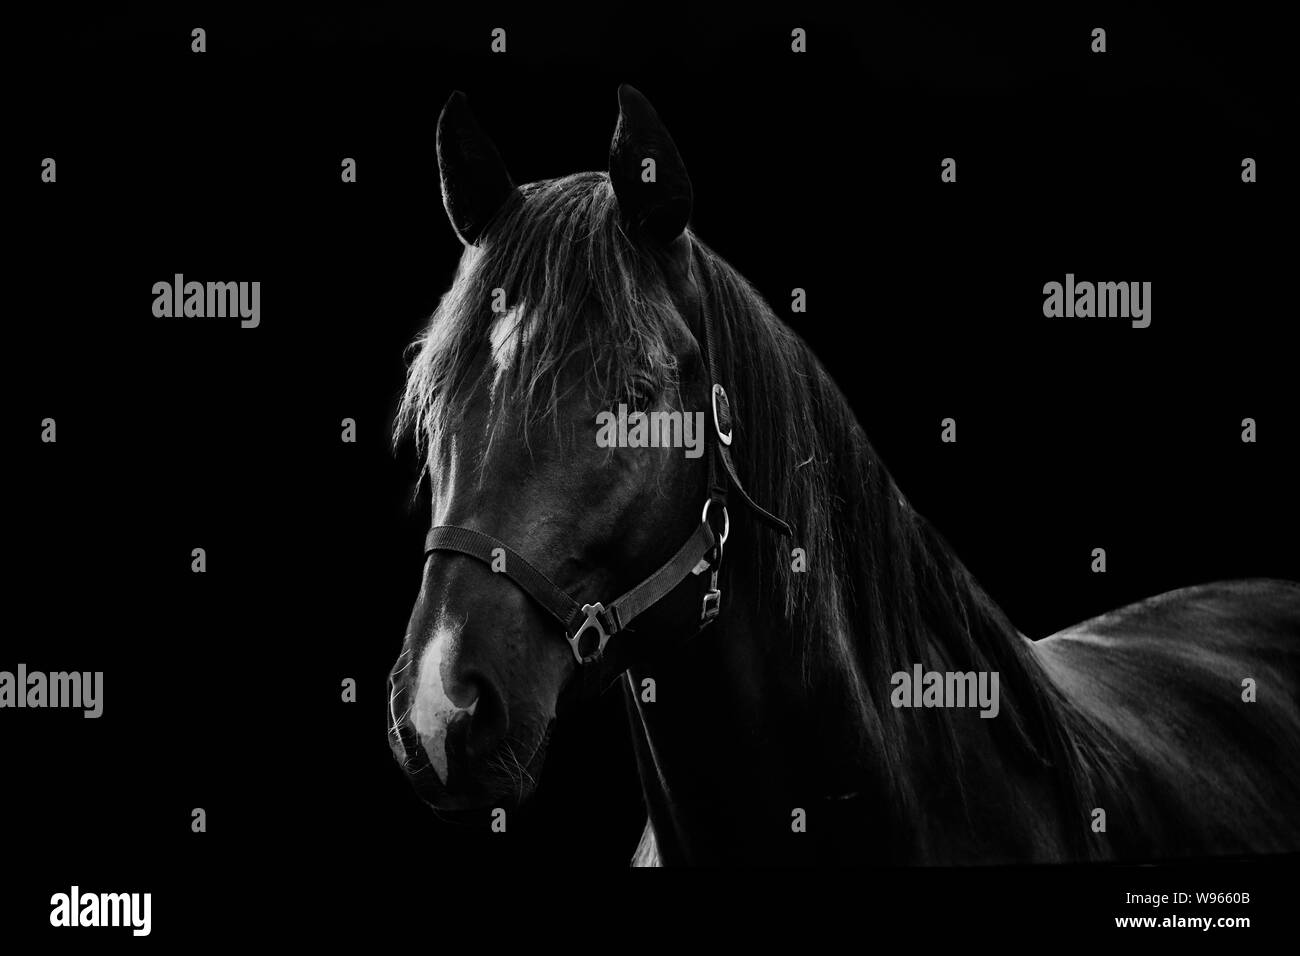 White Horse On Black Background High Resolution Stock Photography And Images Alamy